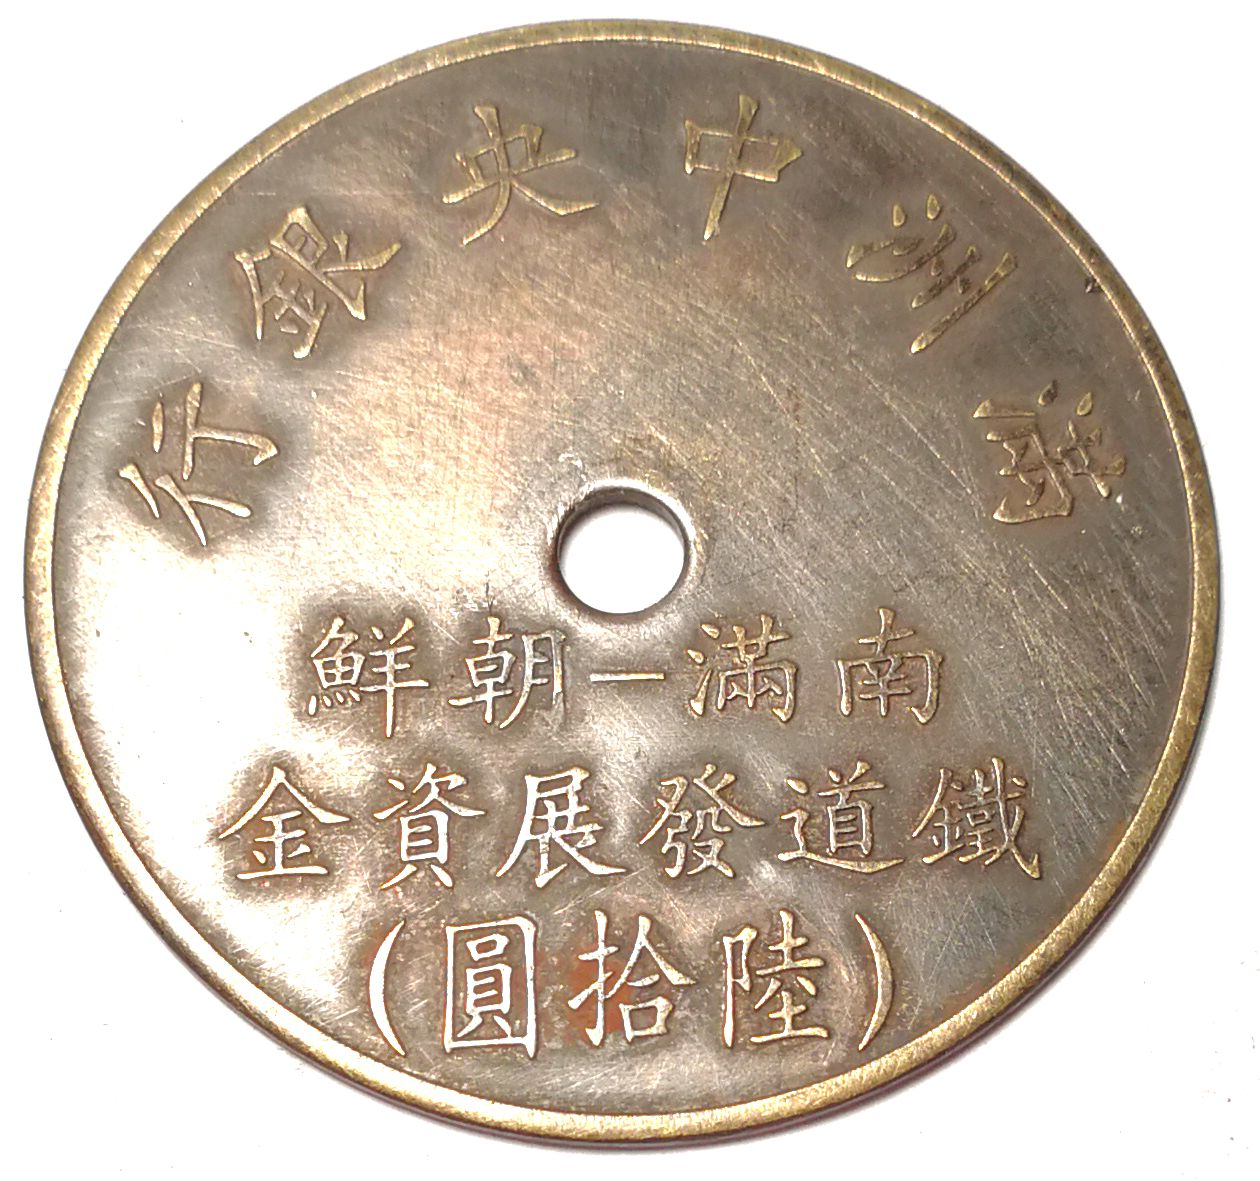 BT497, South Manchukuo Fortresses Construction Fund, 70 Yen Token, 1944